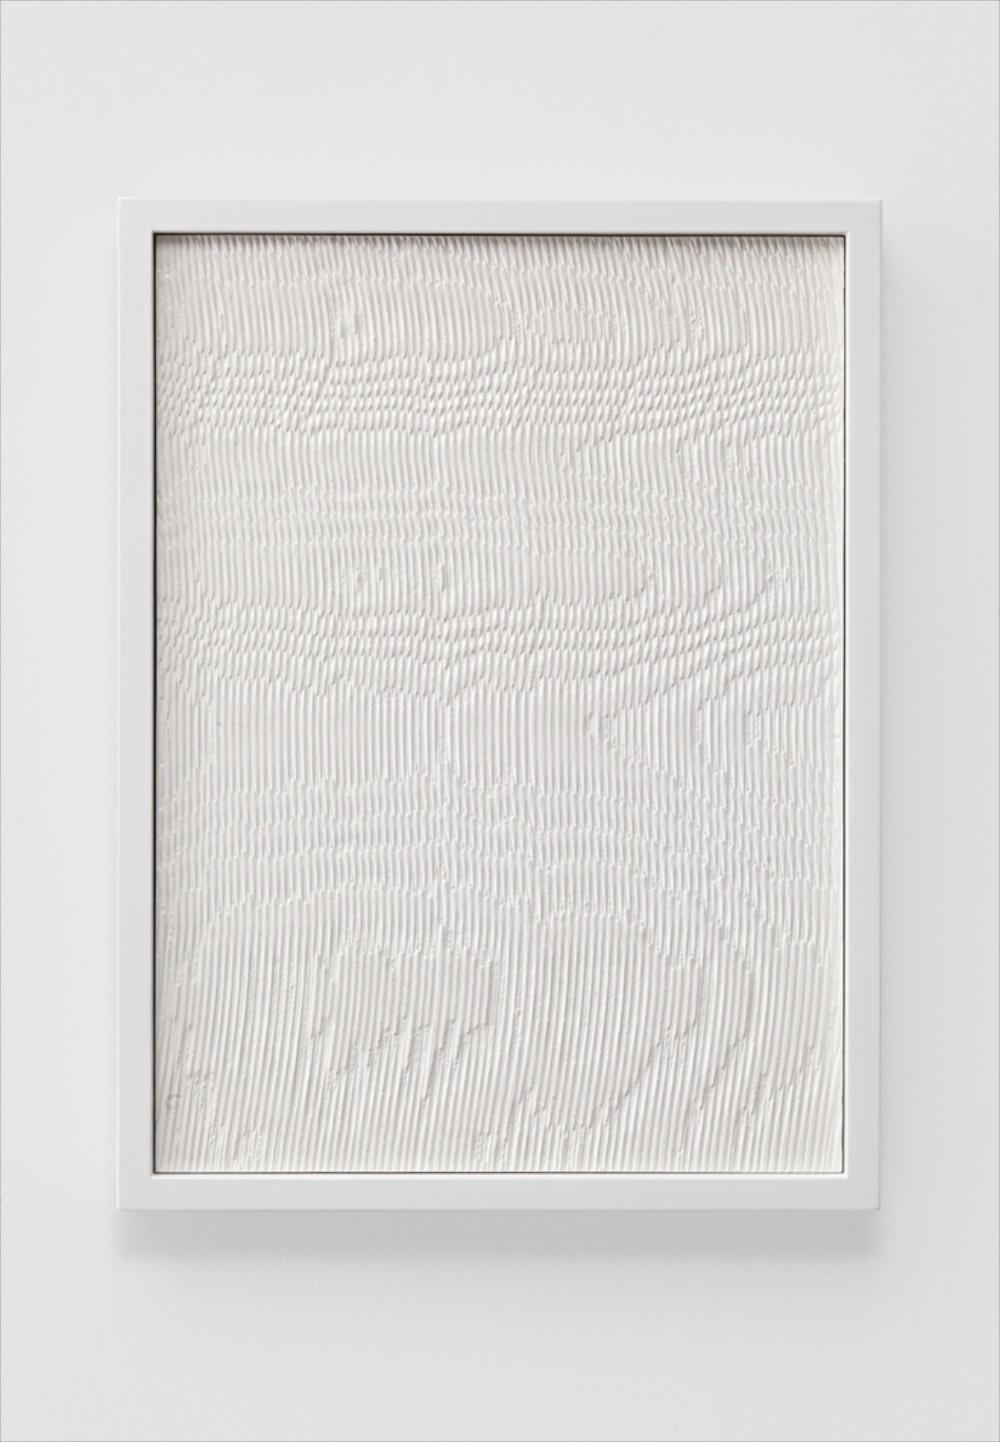 Anthony Pearson  Untitled (Etched Plaster)  2014 Hydrocal in lacquer coated maple frame 16  ¼ h x 12 ¼w x 2d in AP347